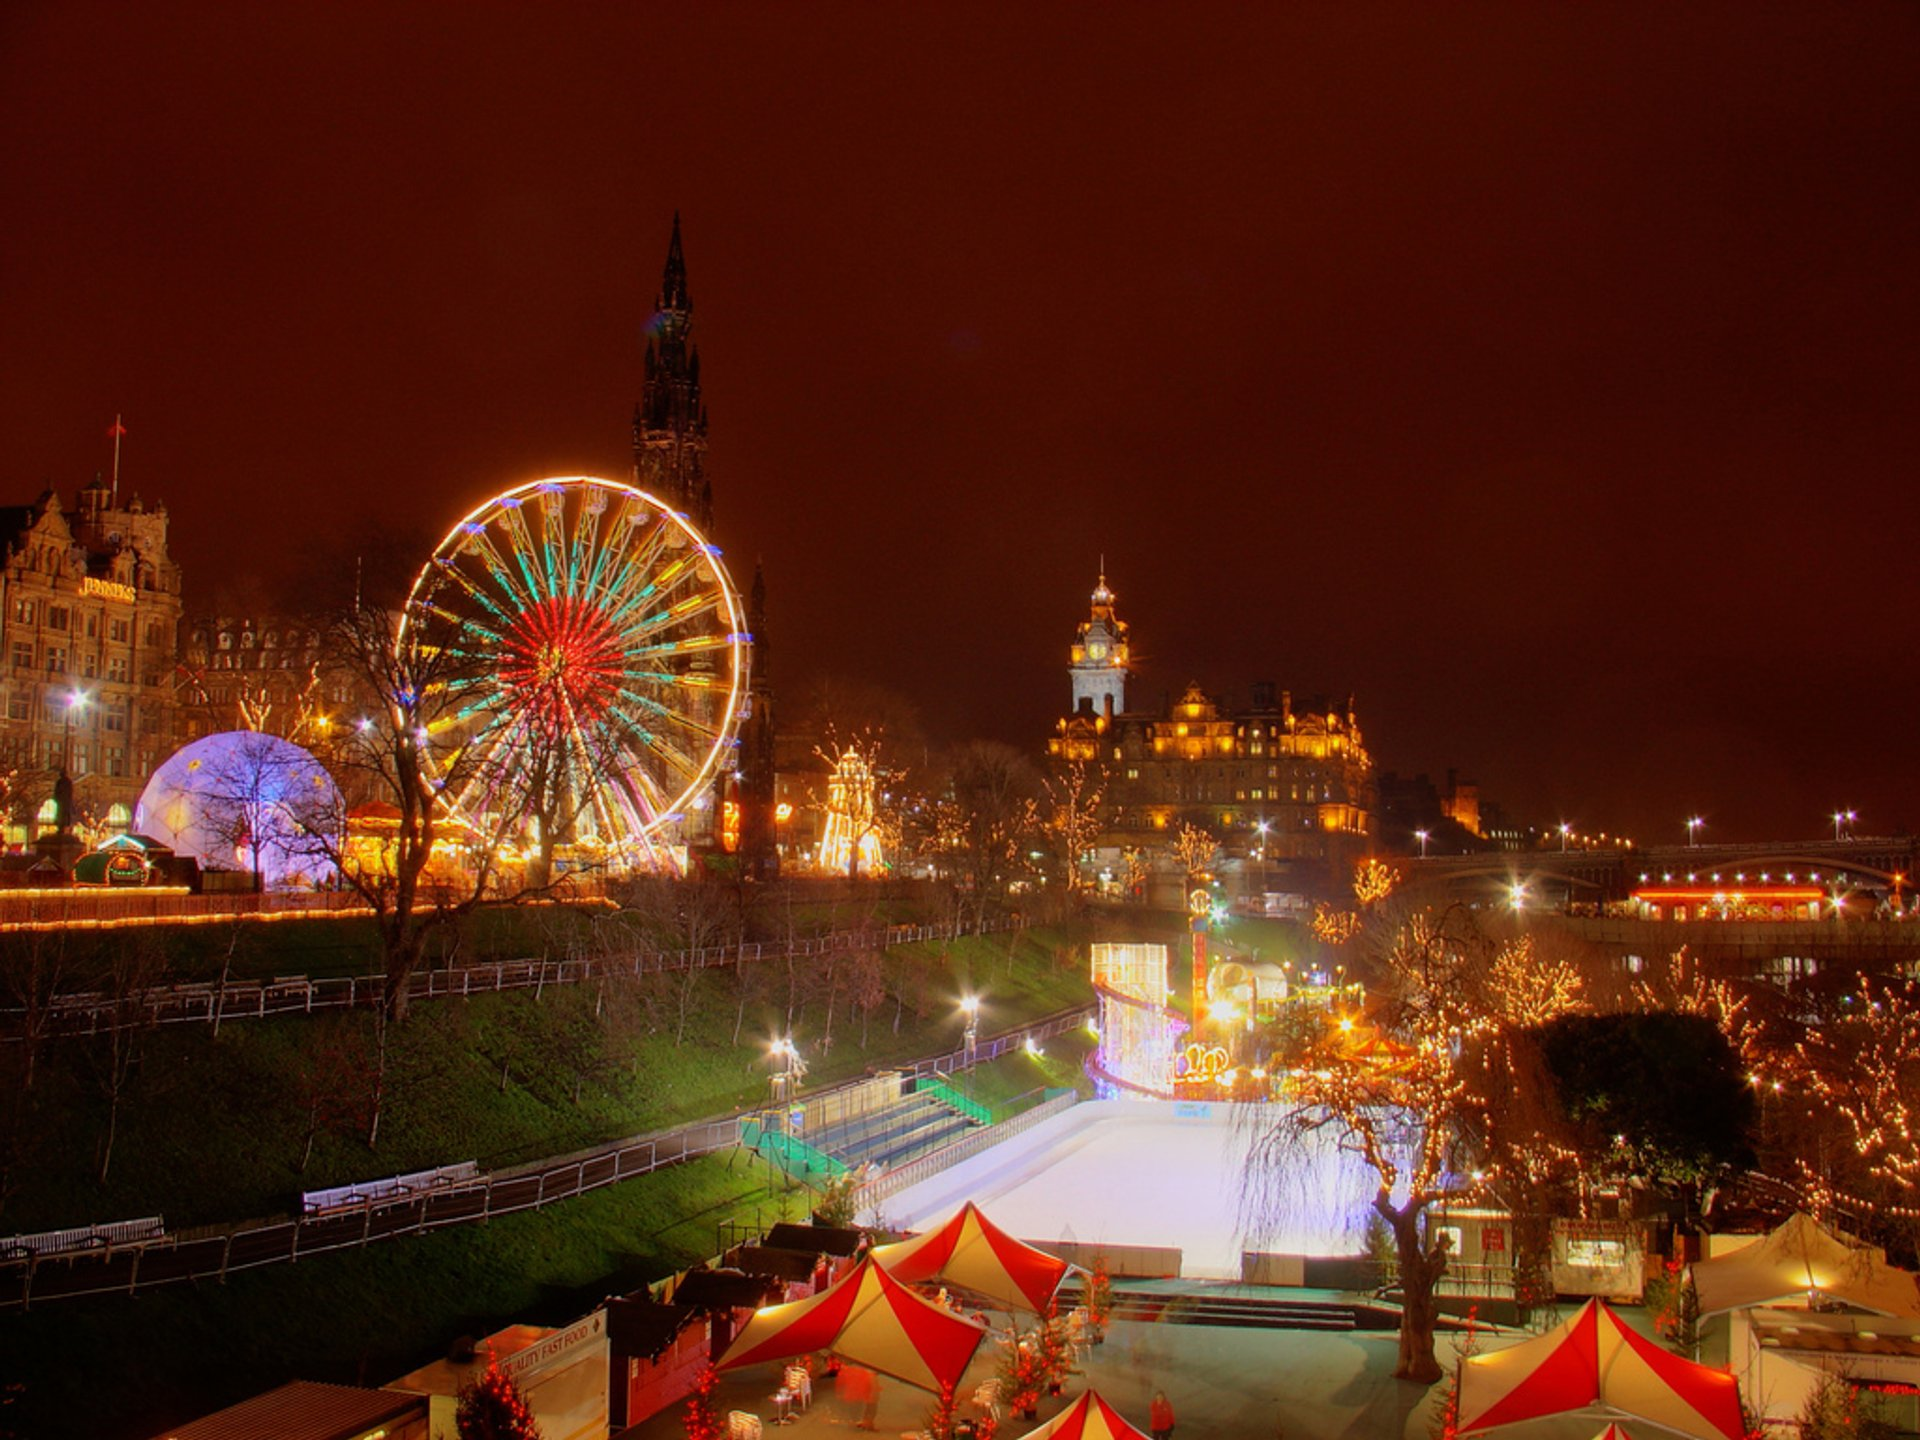 Christmas festivities in Edinburgh on the Boxing Day 2019